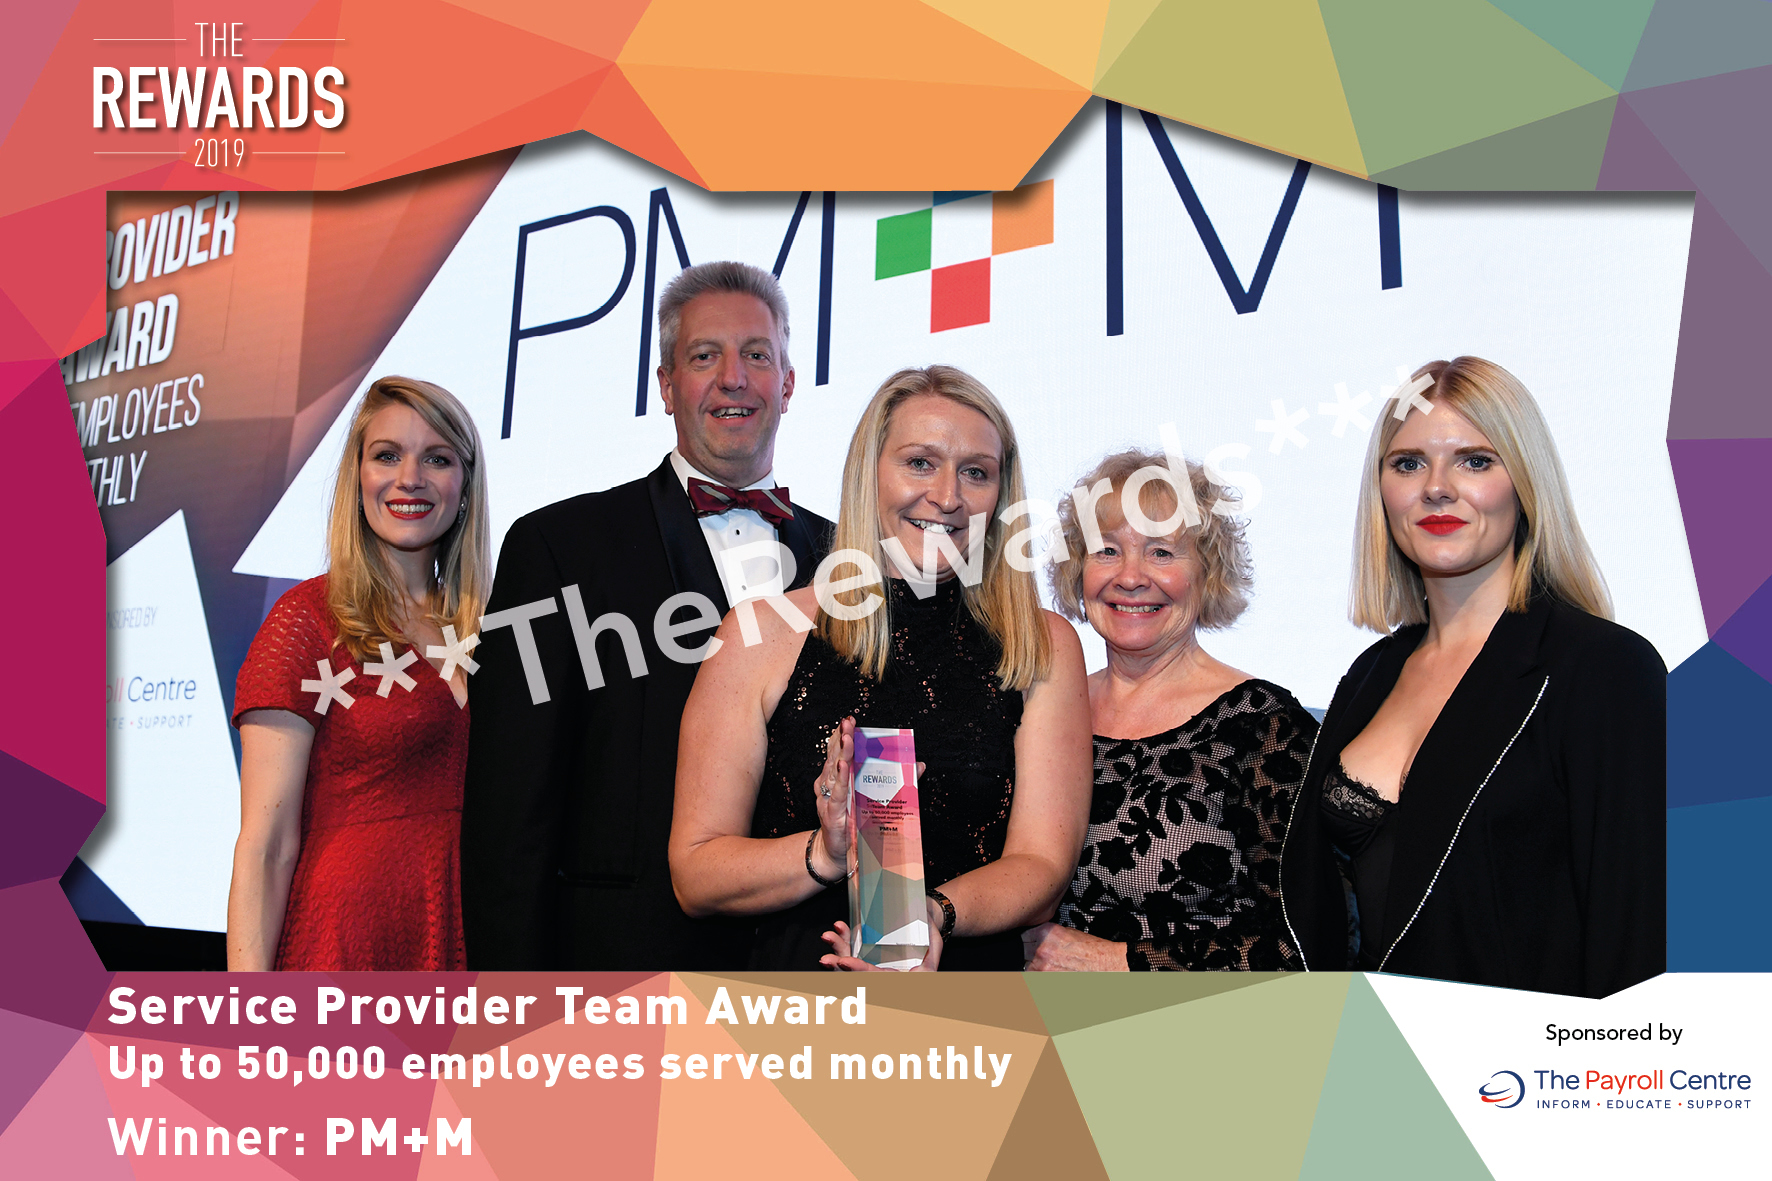 Service Provider Team Award - Up to 50,000 employees served monthly